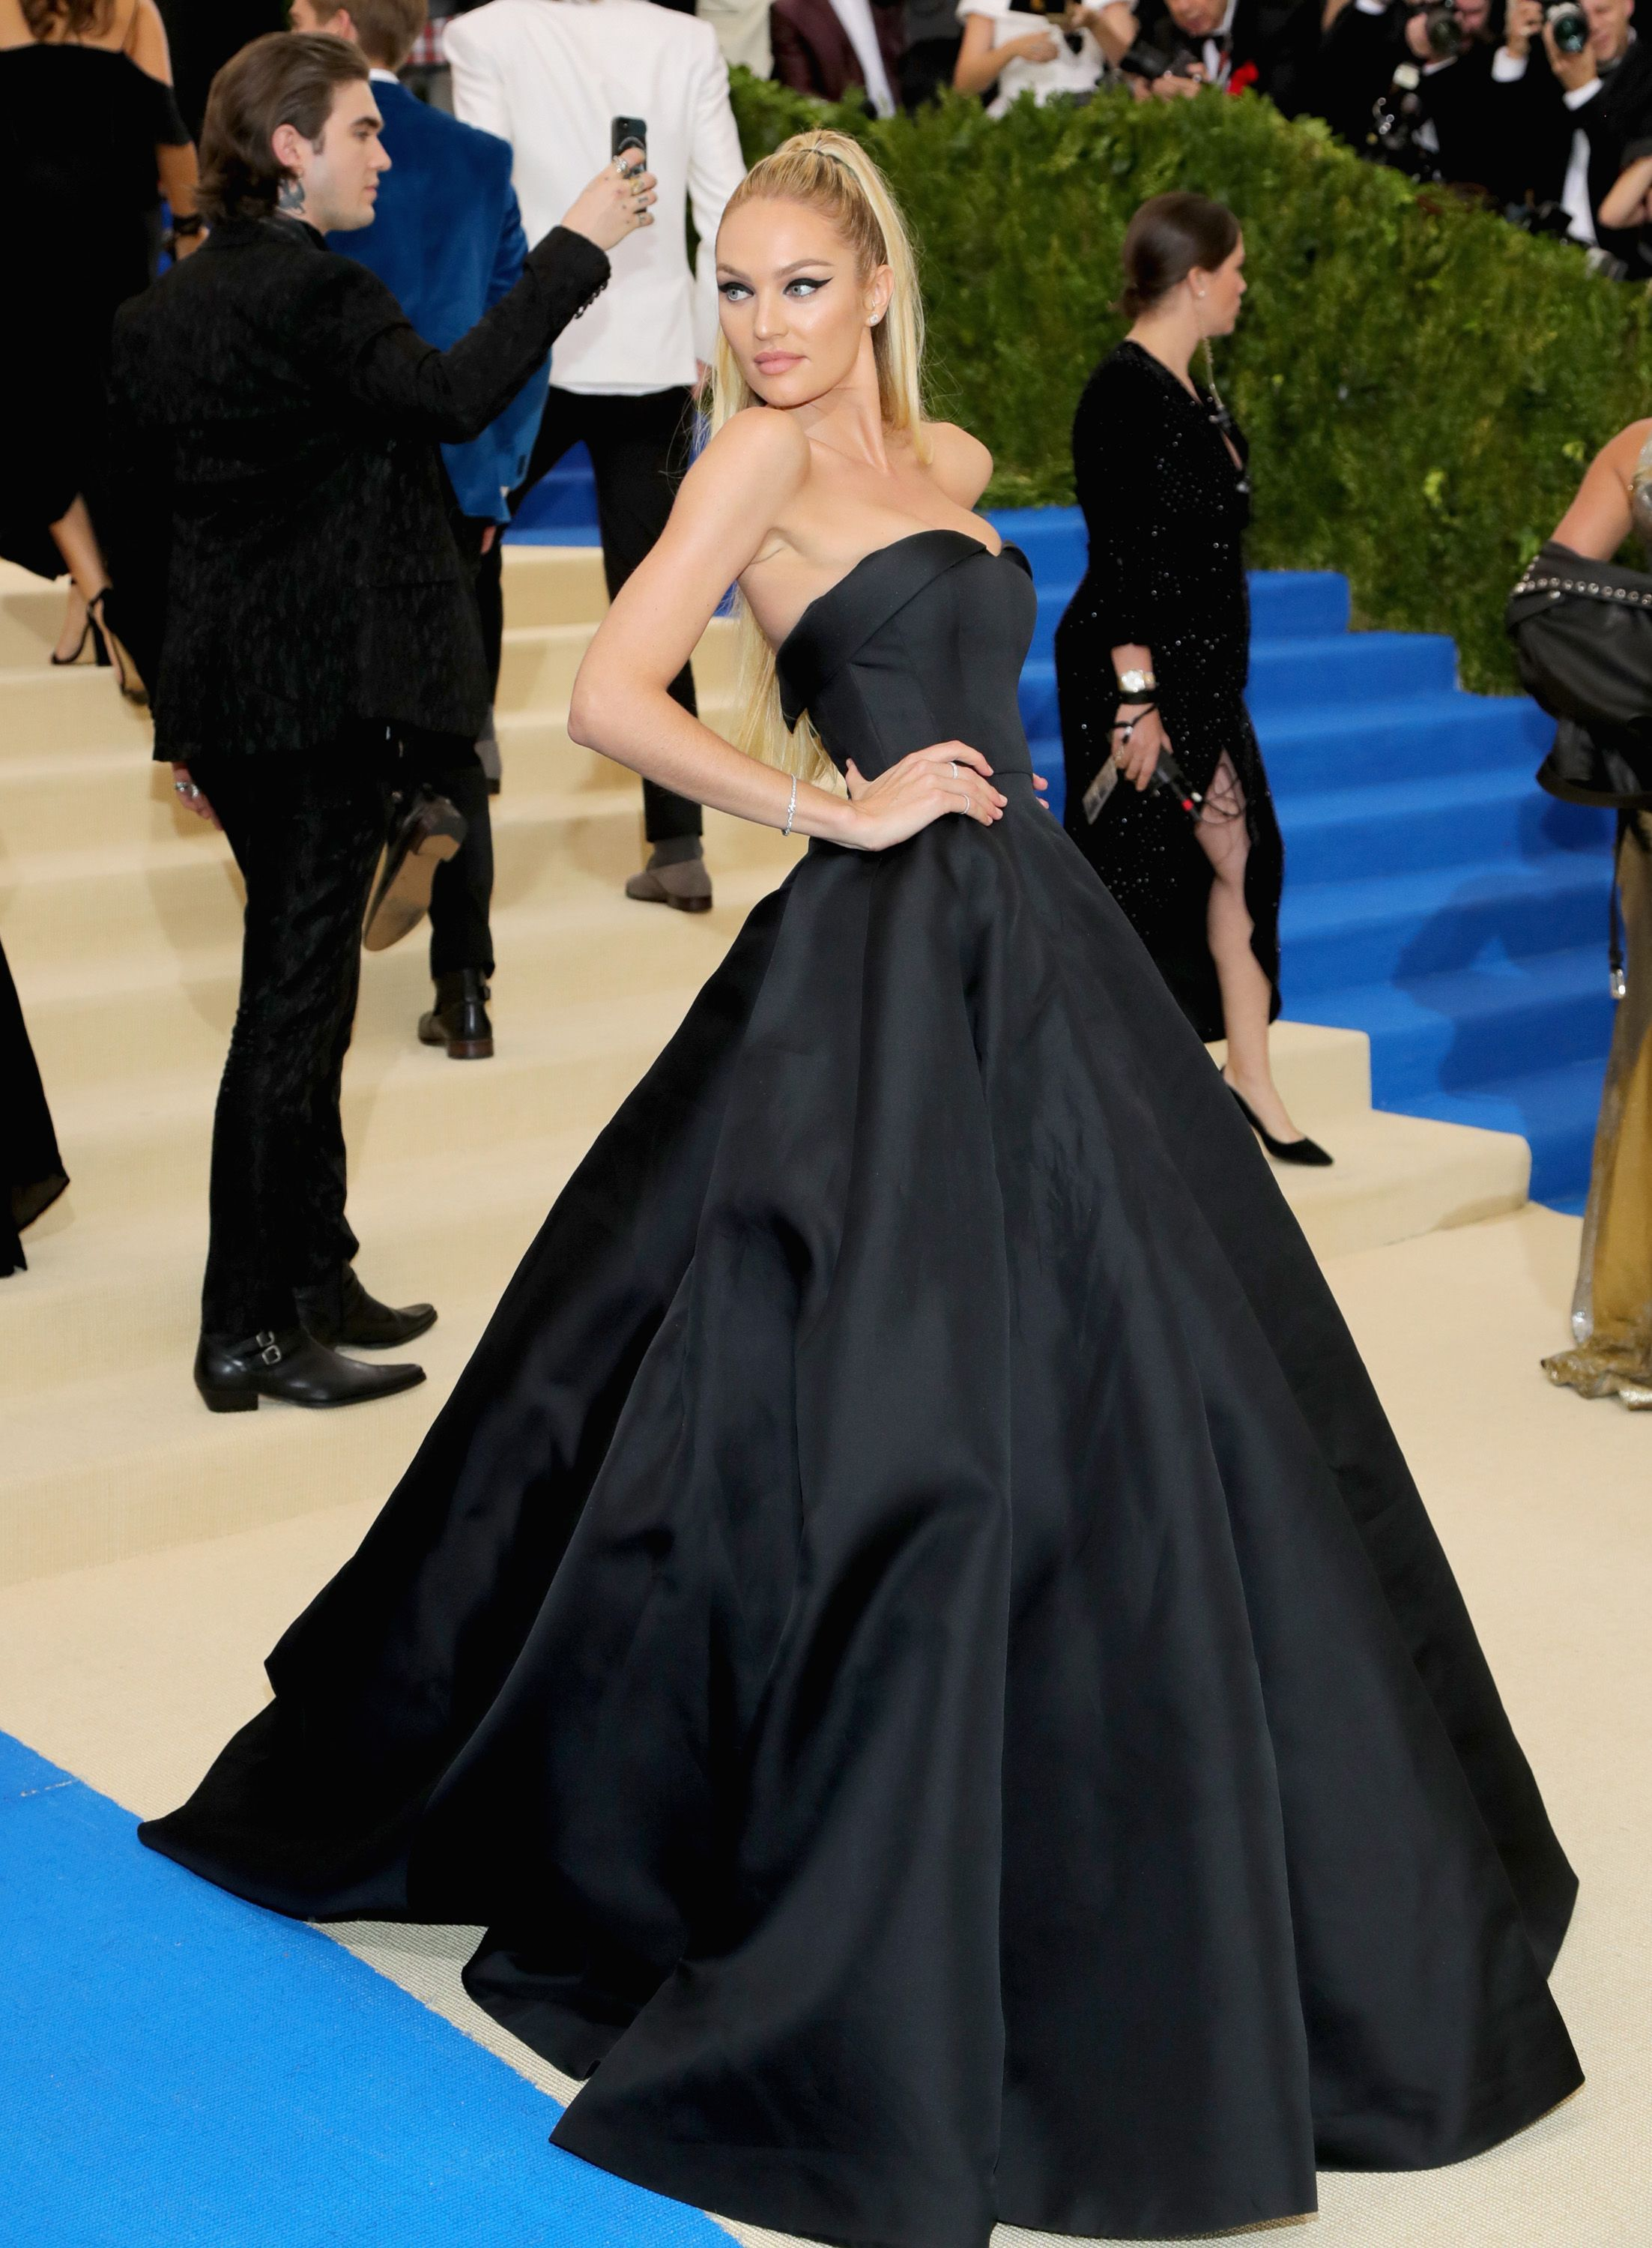 The most noteworthy looks from the met gala red carpet